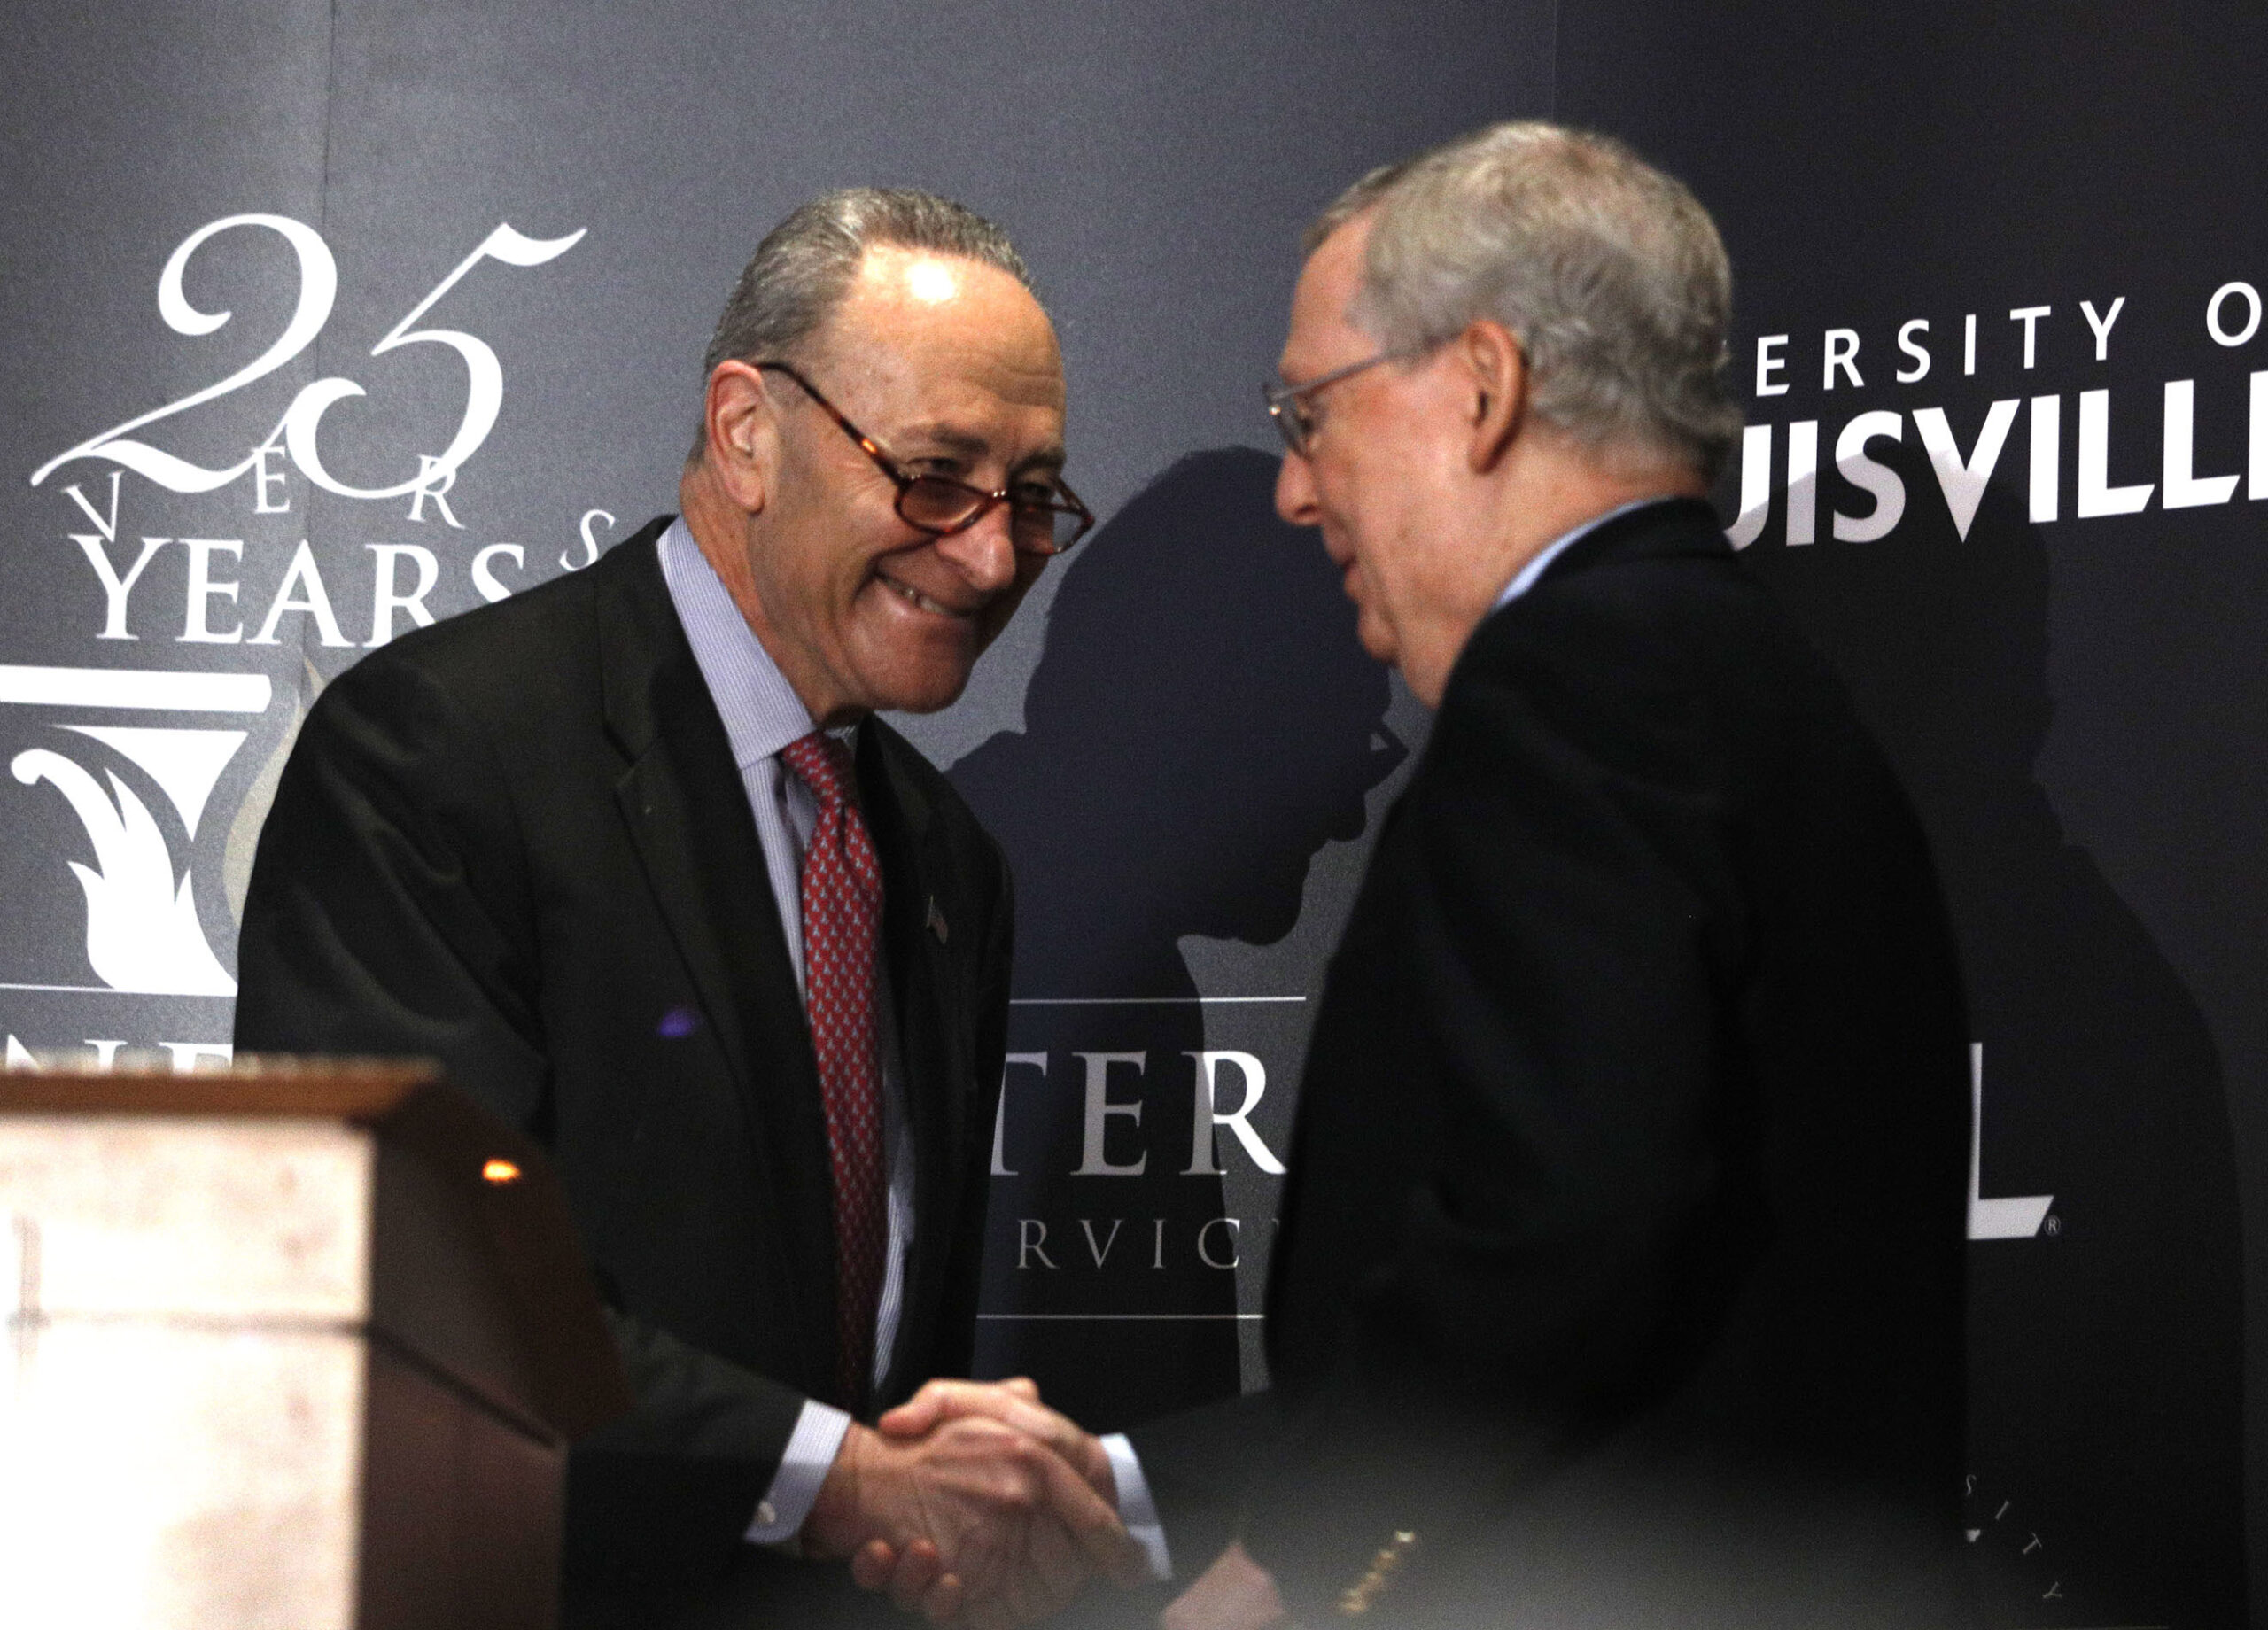 Senate Majority Leader Mitch McConnell (right) (R-Ky.) and Senate Democratic Leader Chuck Schumer (D-N.Y.) shake hands after Schumer delivered a speech and answered questions at the University of Louisville's McConnell Center Feb. 12, 2018 in Louisville, Kentucky. Credit: Bill Pugliano/Getty Images